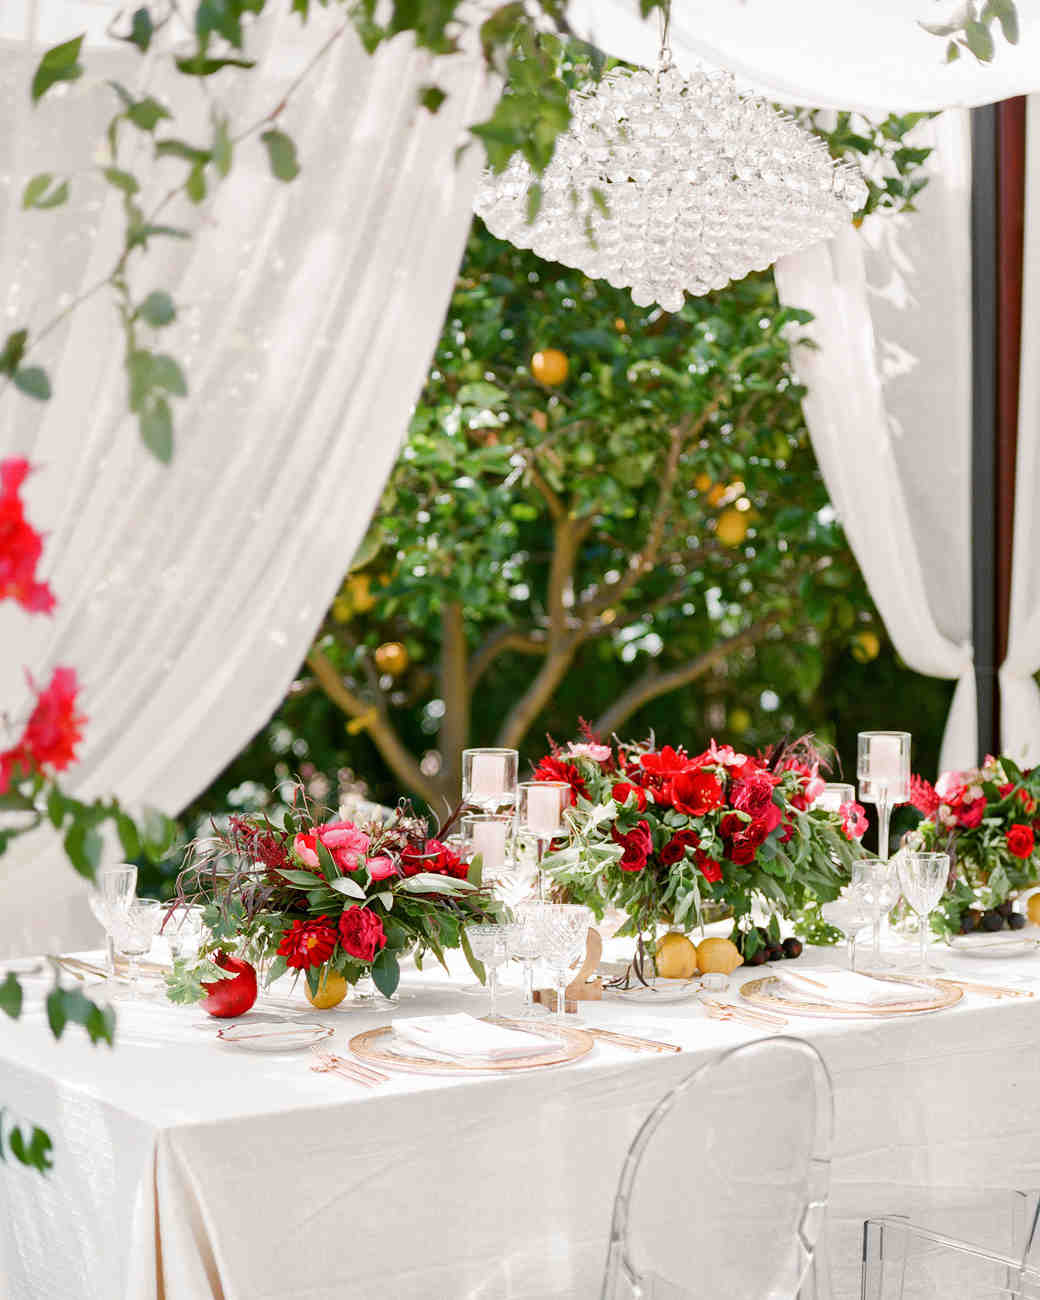 Flowers Wedding Ideas: 47 Hanging Wedding Décor Ideas